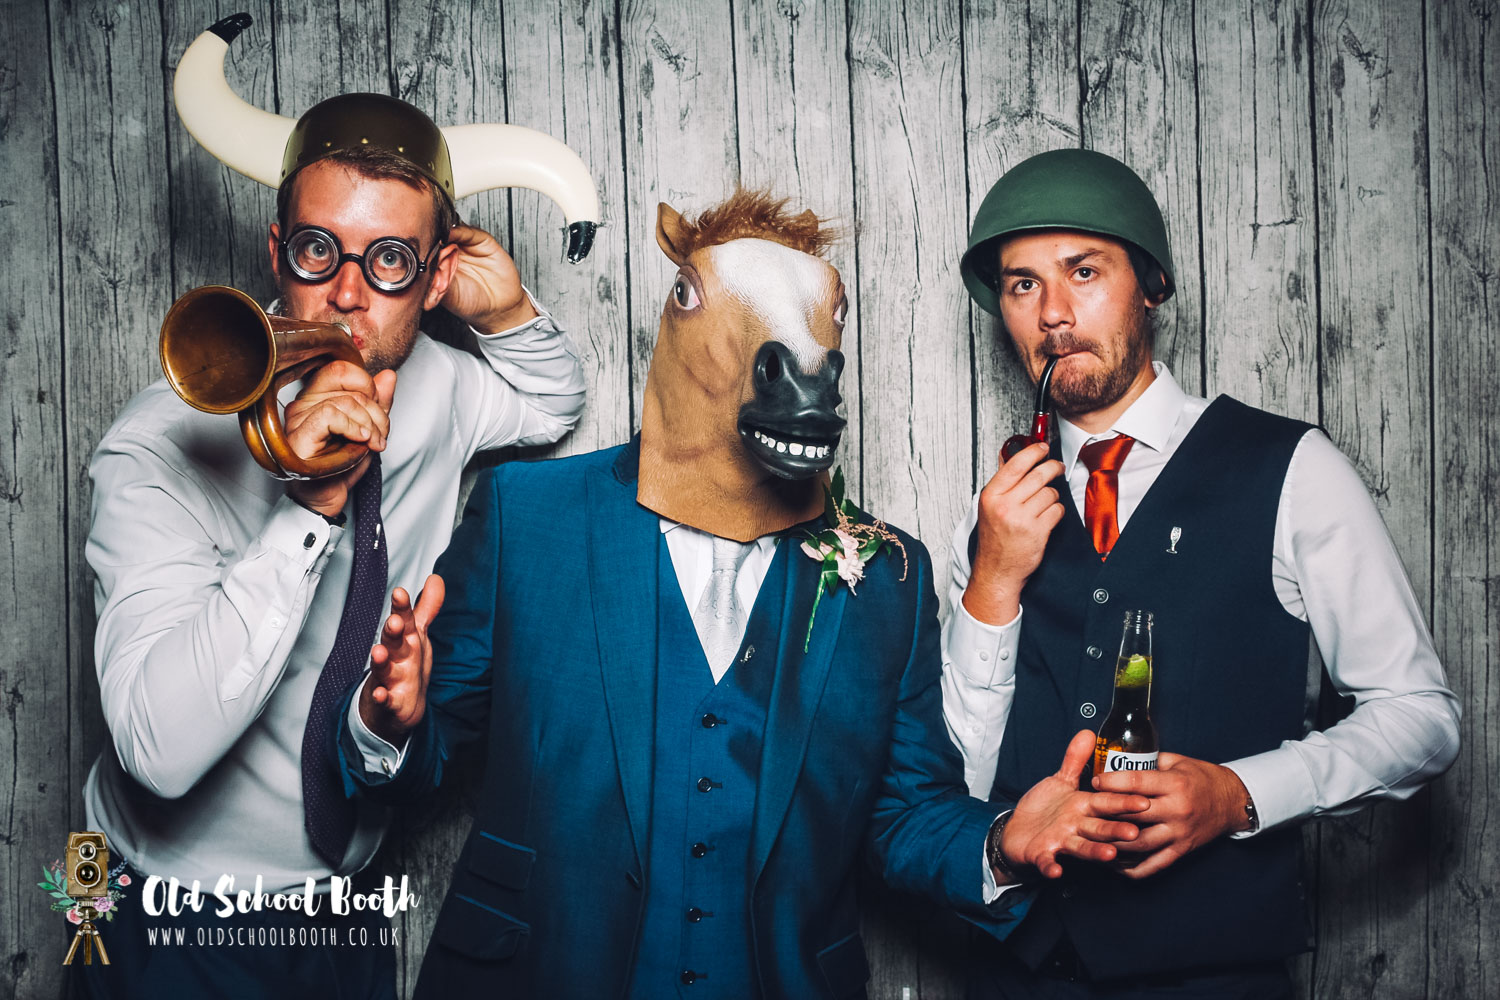 swancar photo booth